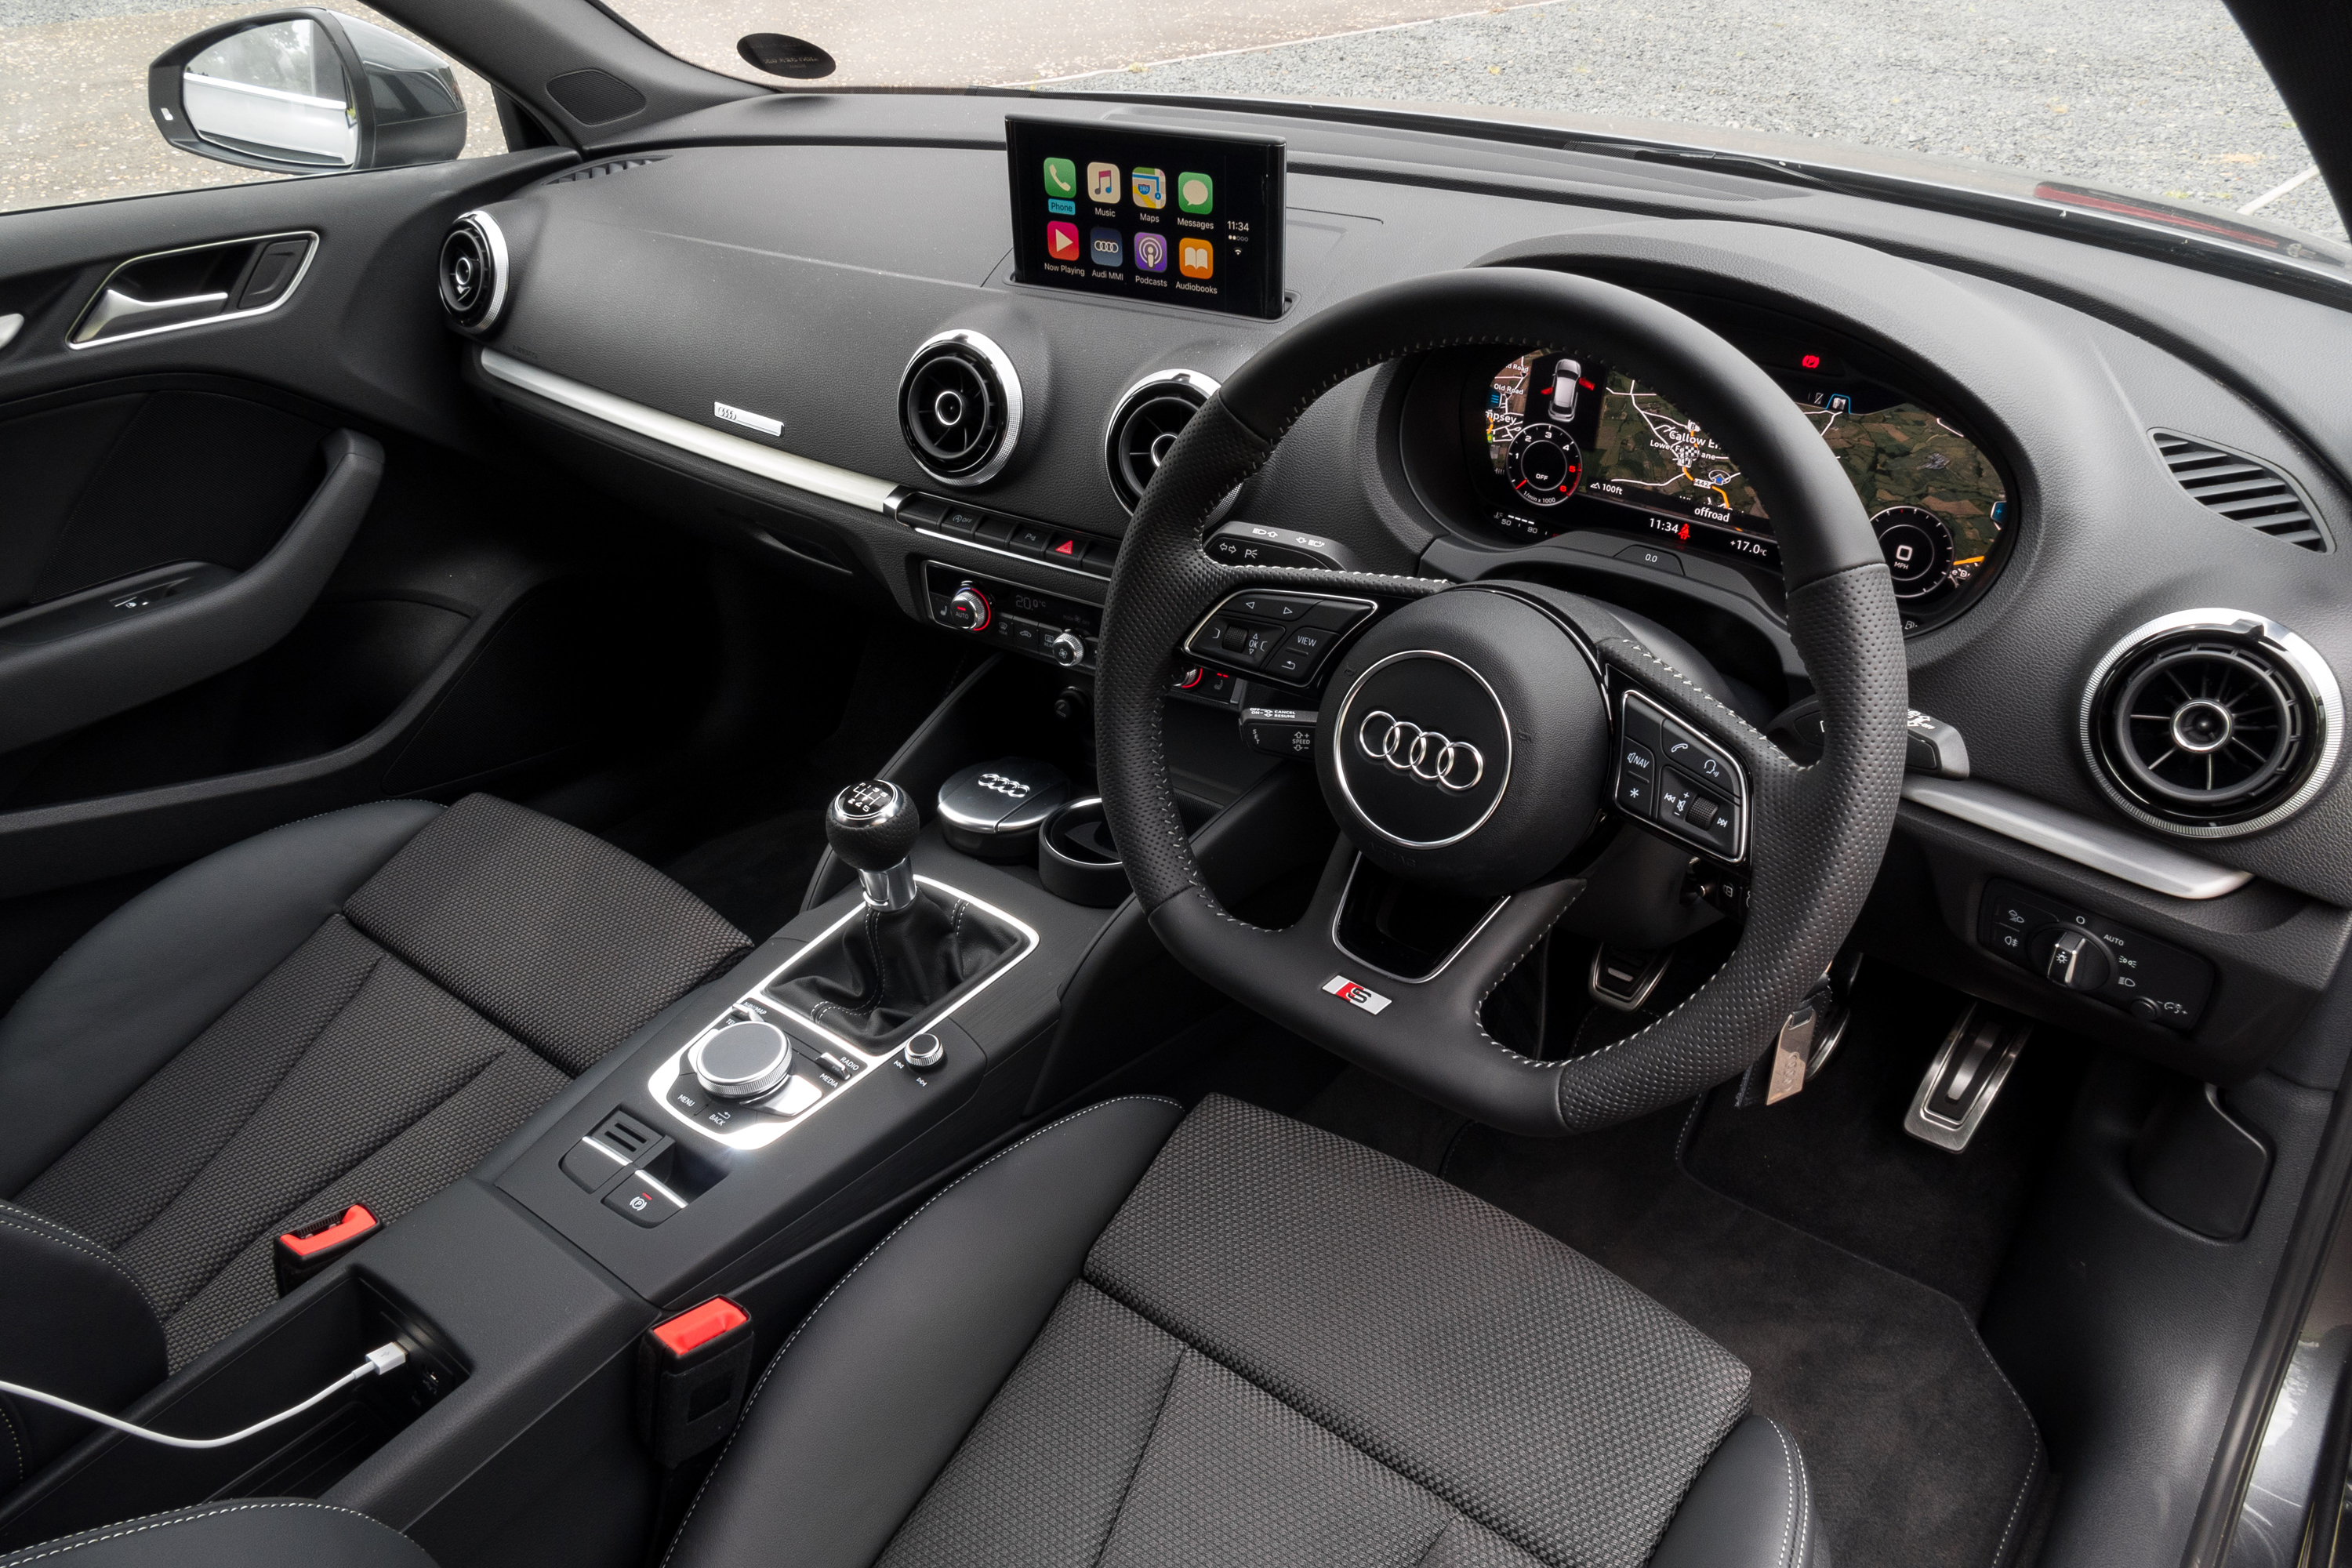 audi a3 sportback interior   infotainment carwow bmw 3 series manual transmission for sale bmw 3 series manual download